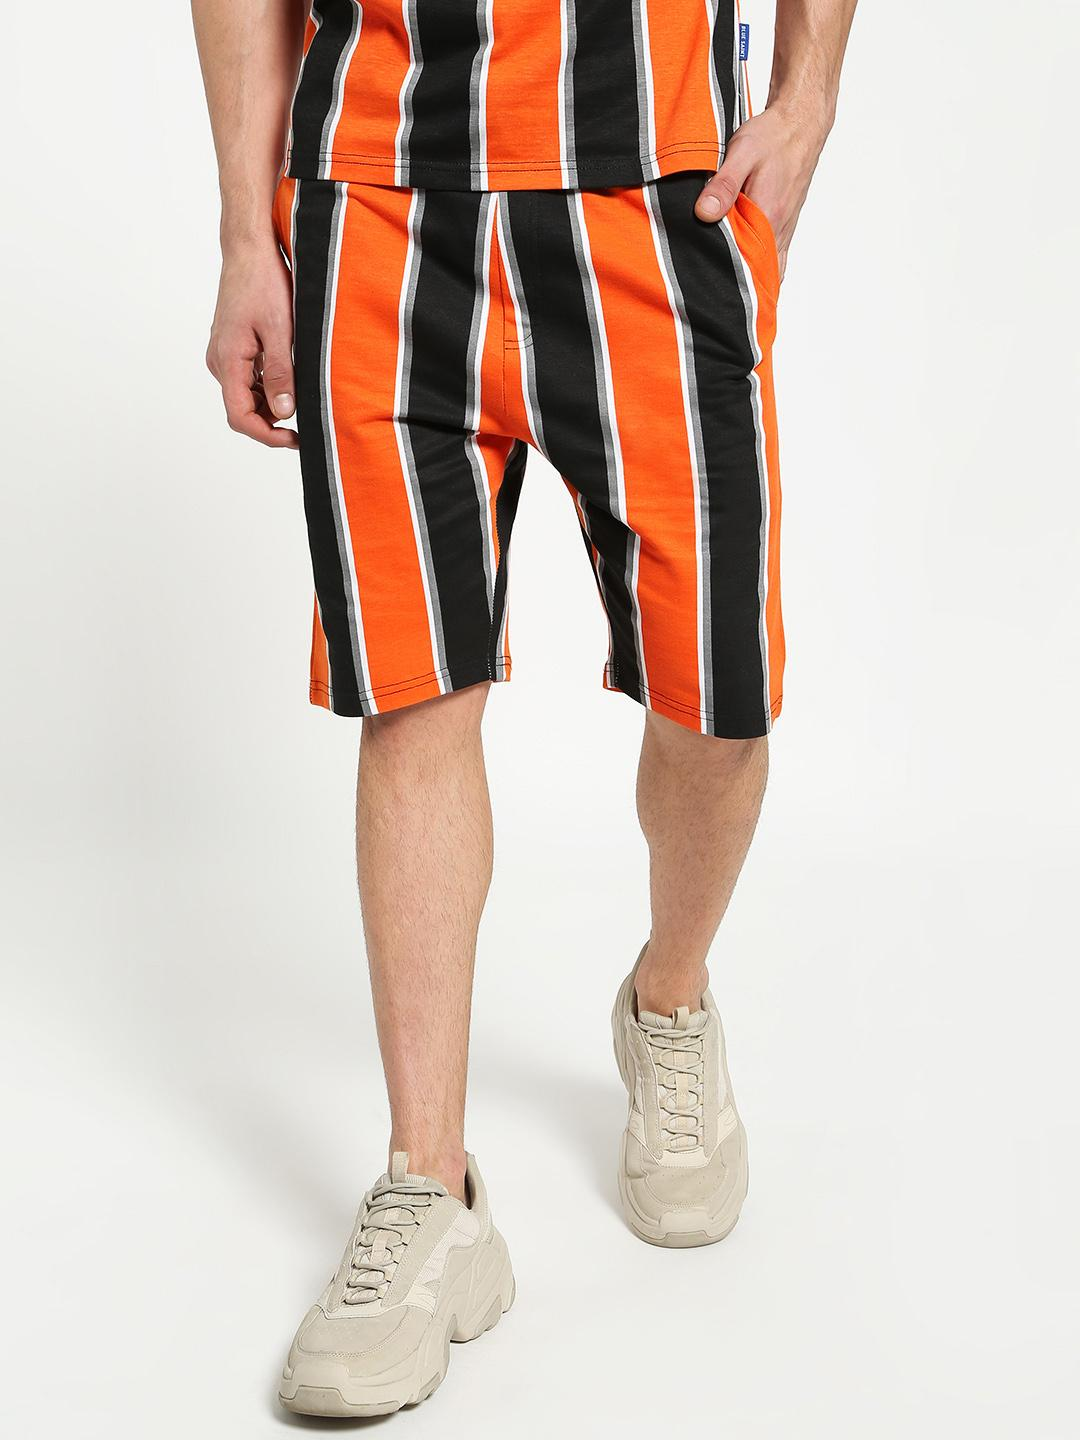 Blue Saint Multi Vertical Multi-Stripe Shorts 1